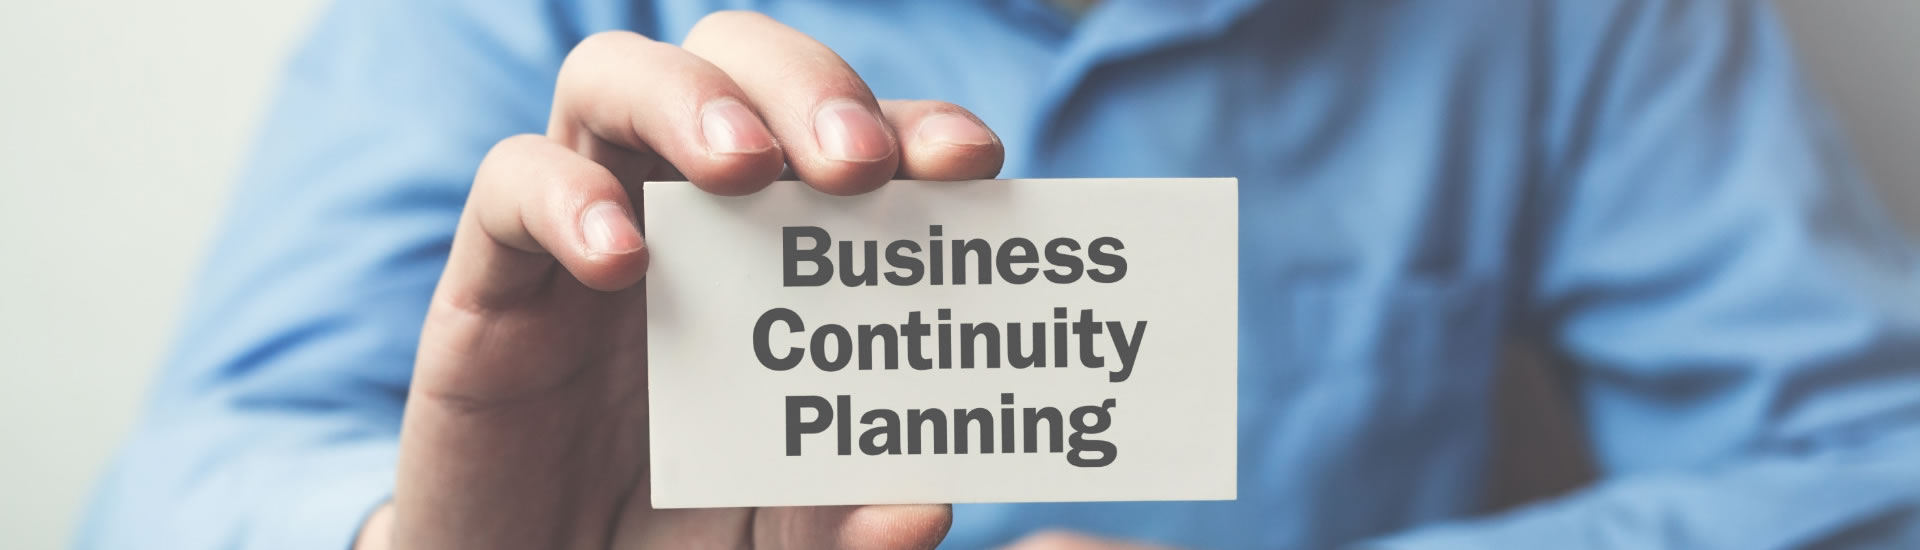 Business Continuity Management Services – Birmingham - Tek-nology Solutions